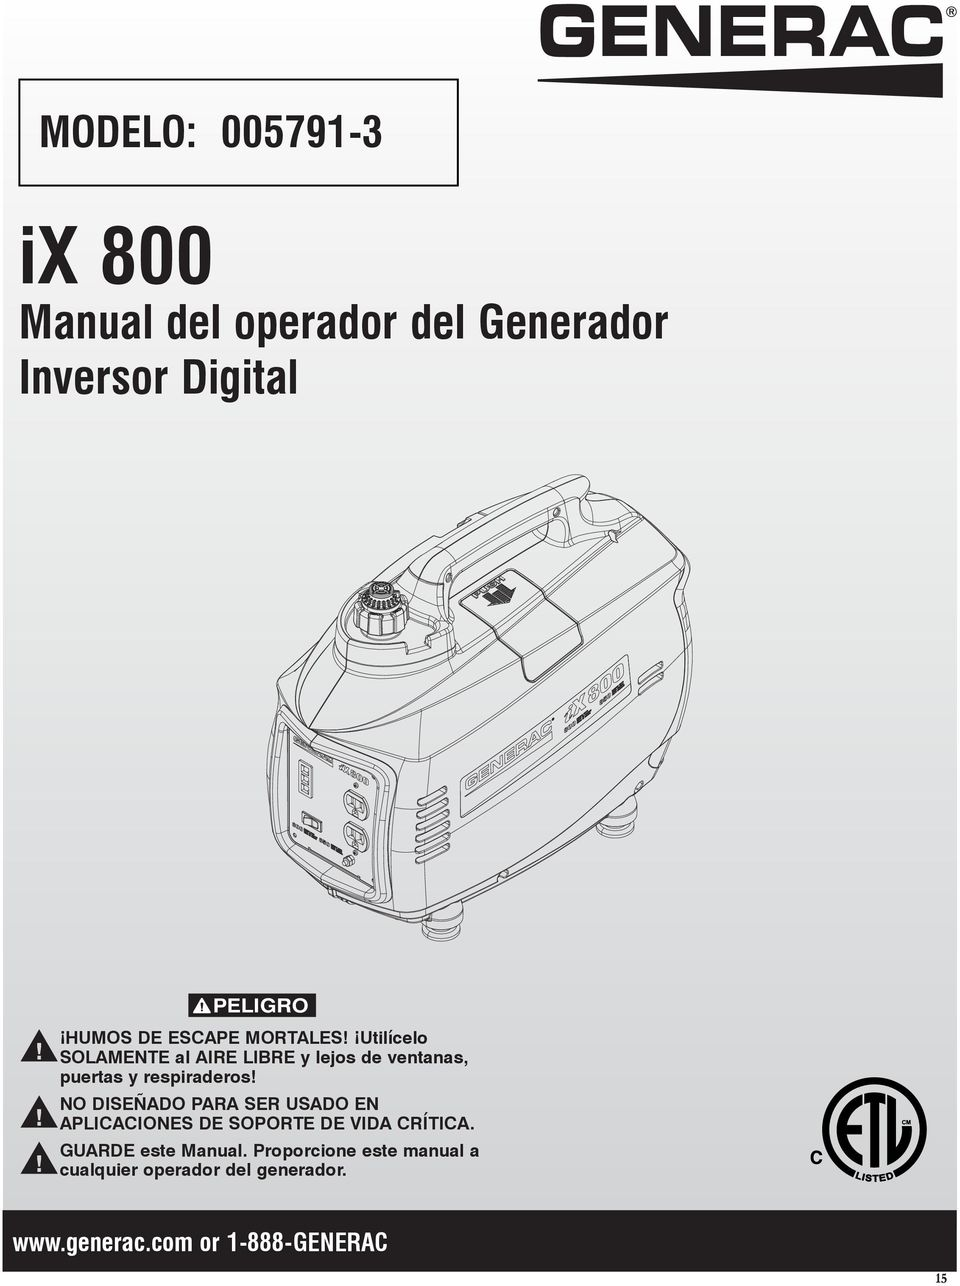 Generac 005735 Wiring Manual - todayu0027s world cup matches ... on